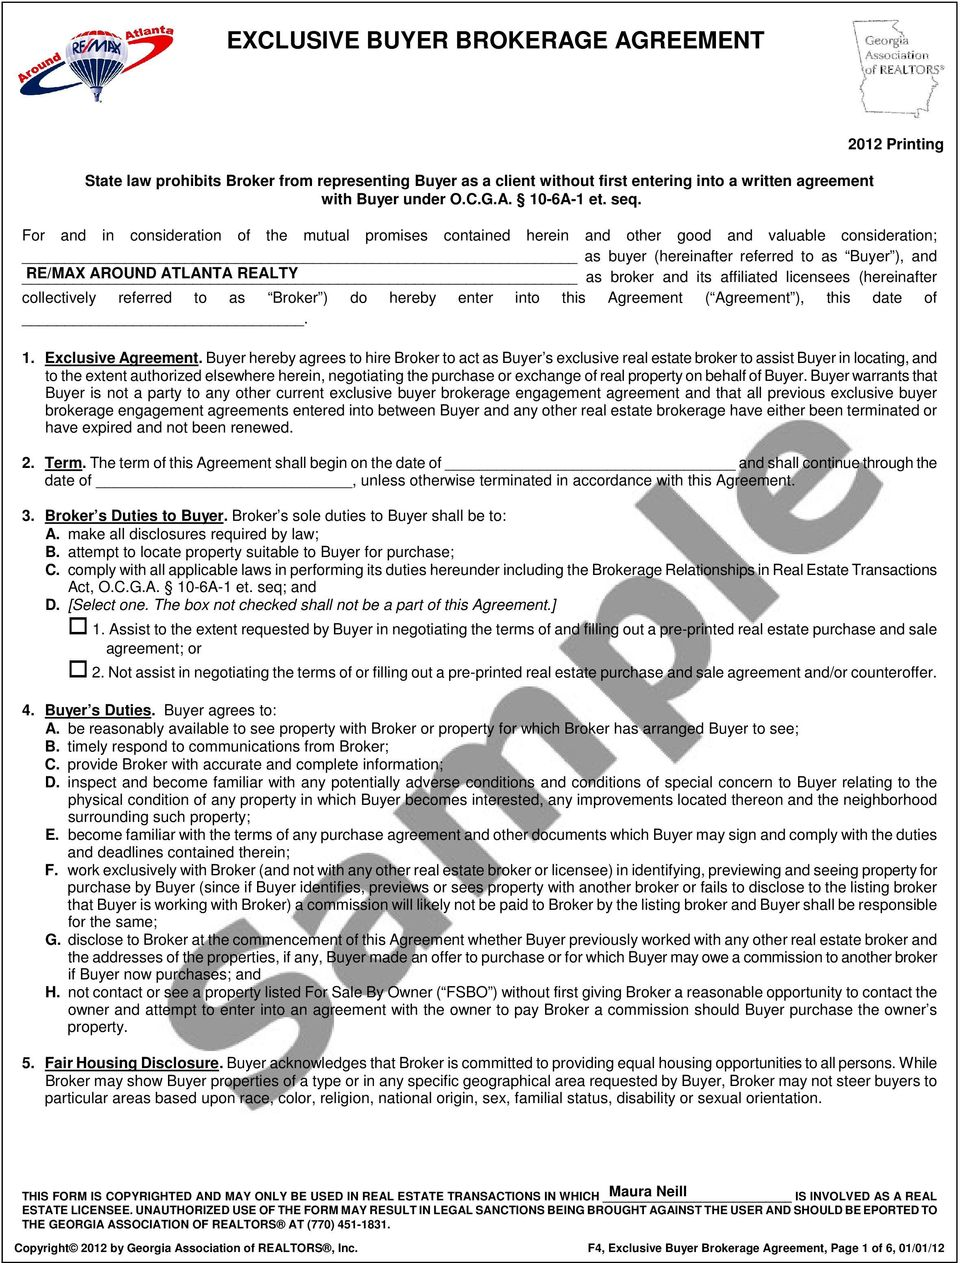 REALTY as broker and its affiliated licensees (hereinafter collectively referred to as Broker ) do hereby enter into this Agreement ( Agreement ), this date of. 1. Exclusive Agreement.